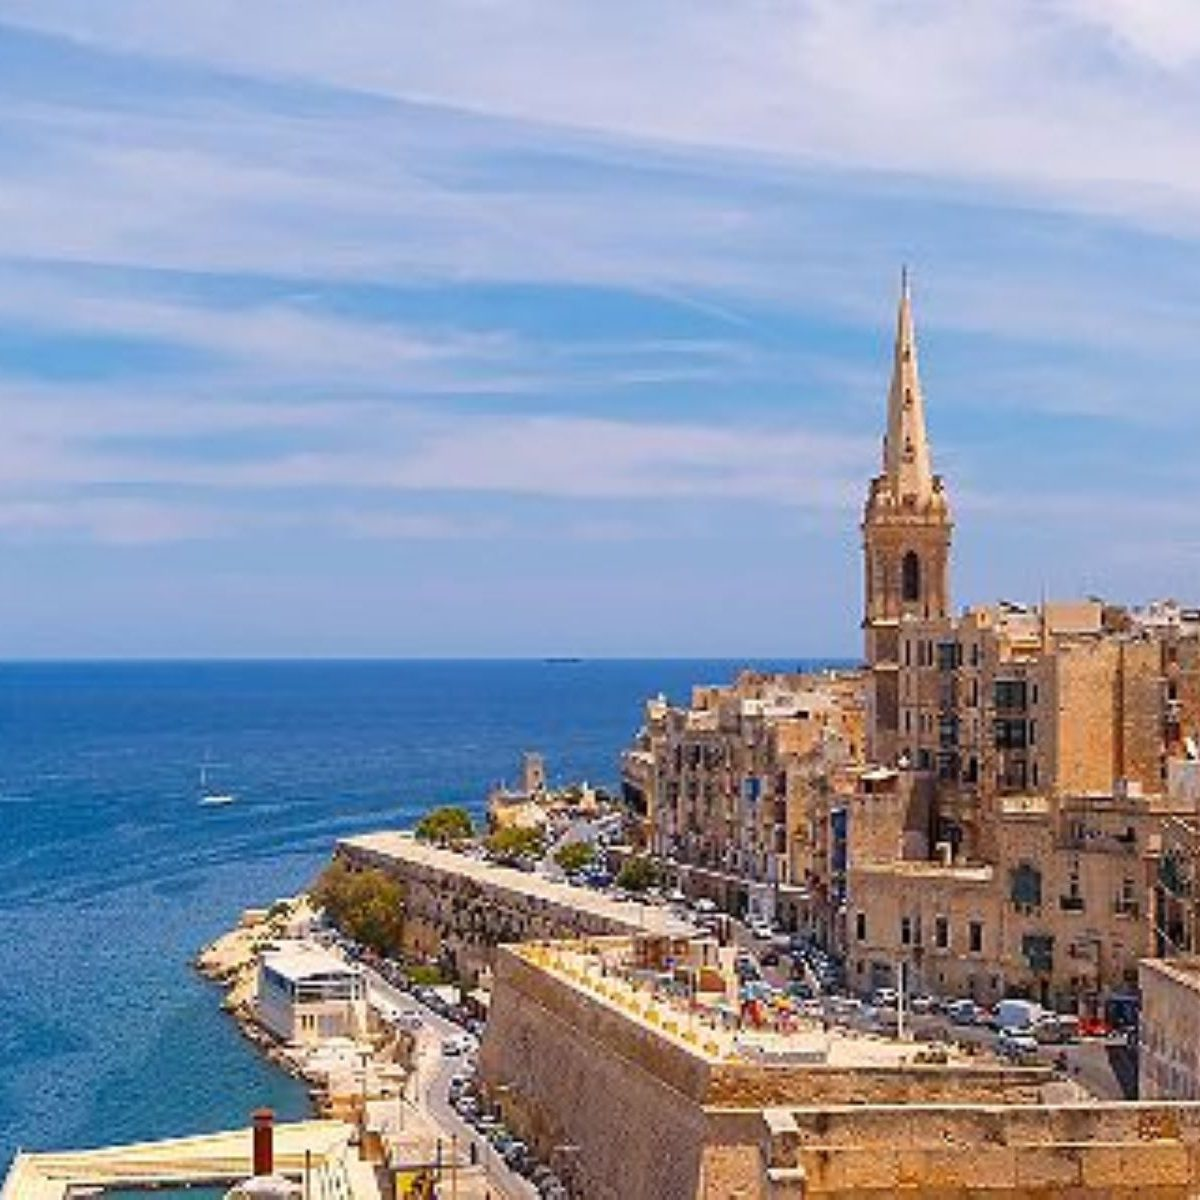 The Next Wave of Innovation for the Fund and Asset Management Industry in Malta